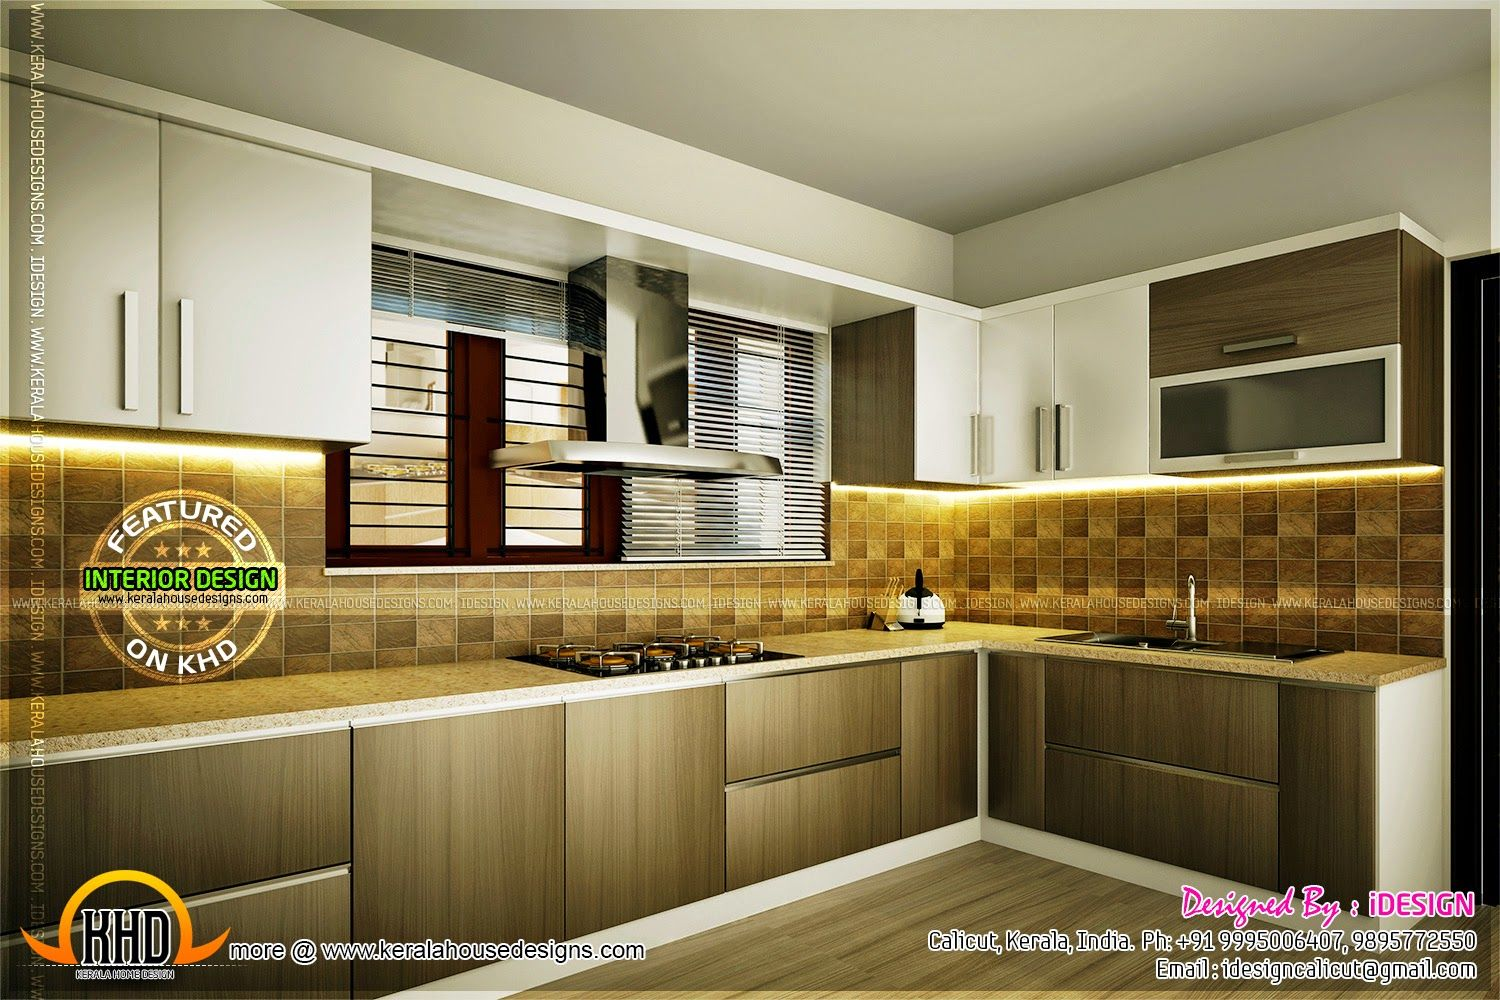 Kitchen Design Interior  Aasim  Pinterest  Master Bedroom Interesting Home Kitchen Design India Design Decoration